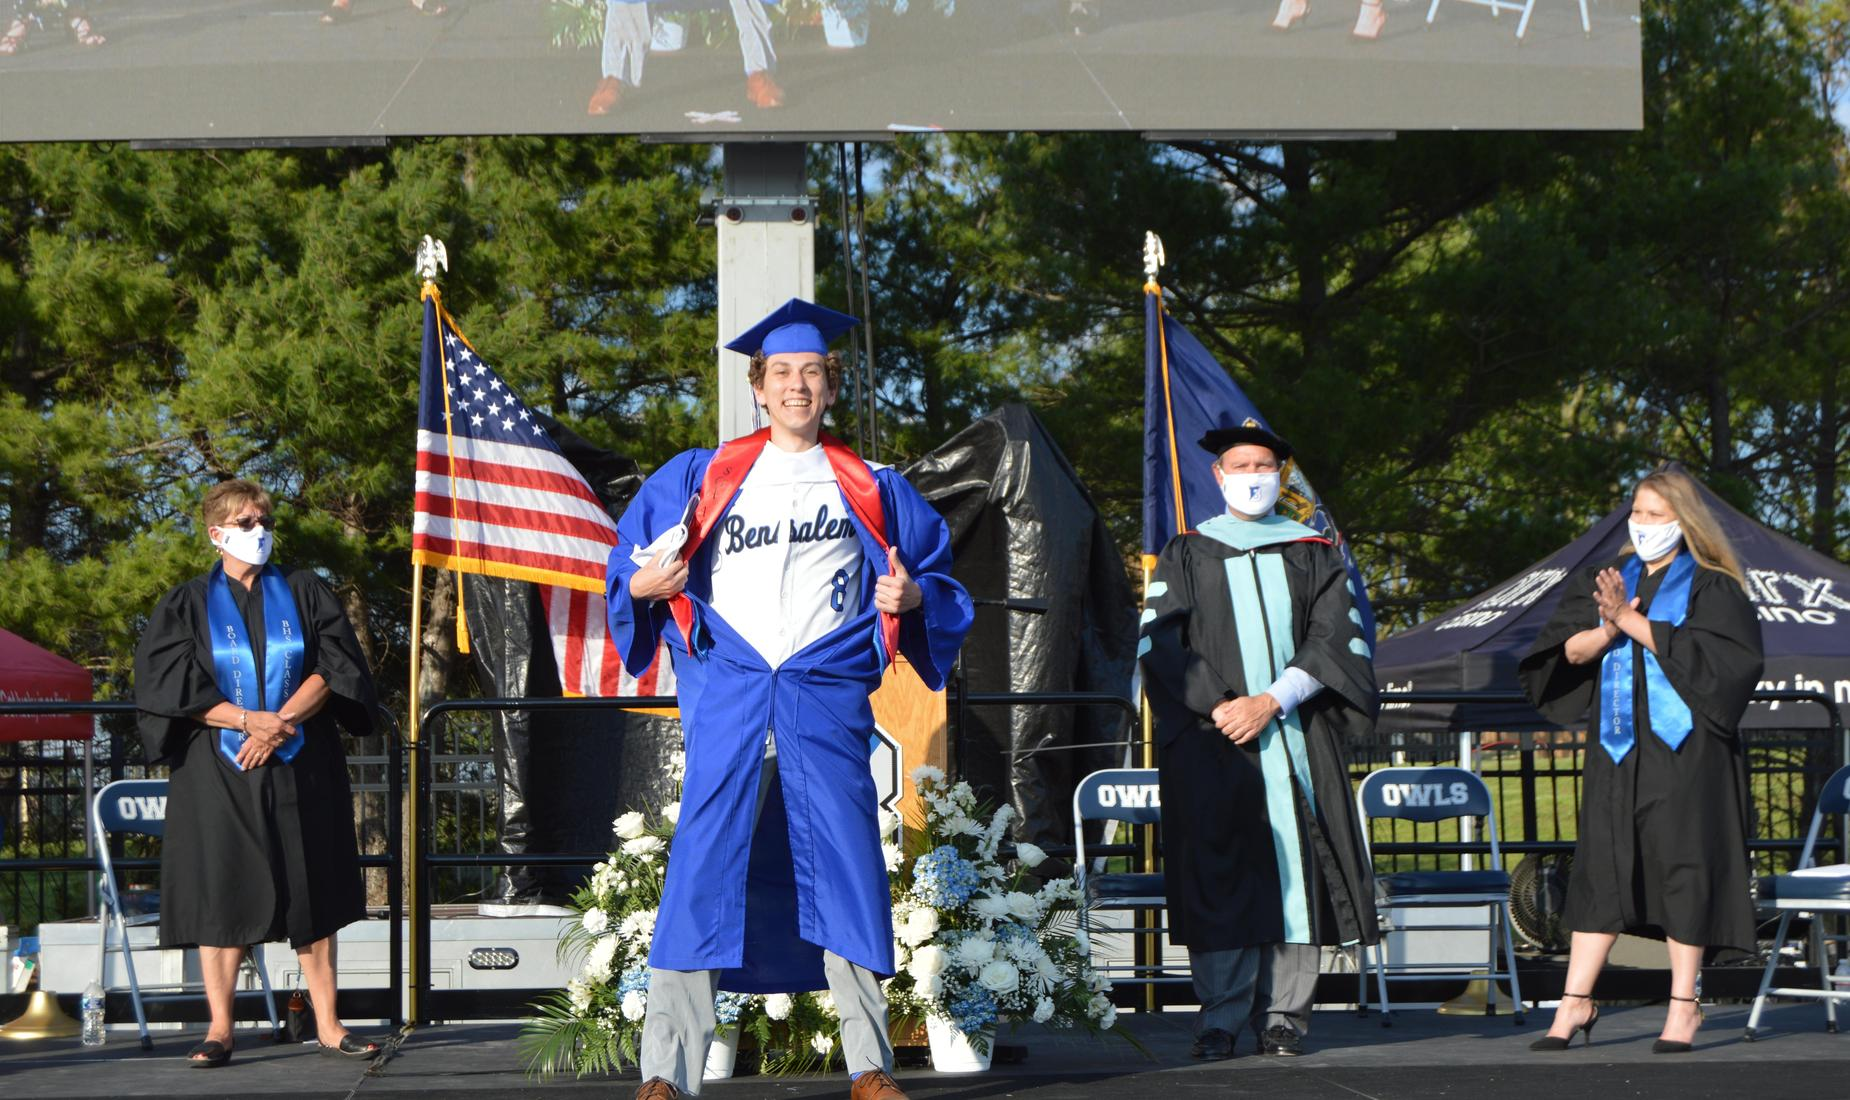 BHS senior dressed by blue cap and gown opens gown to show his baseball jersey, Bensalem #8